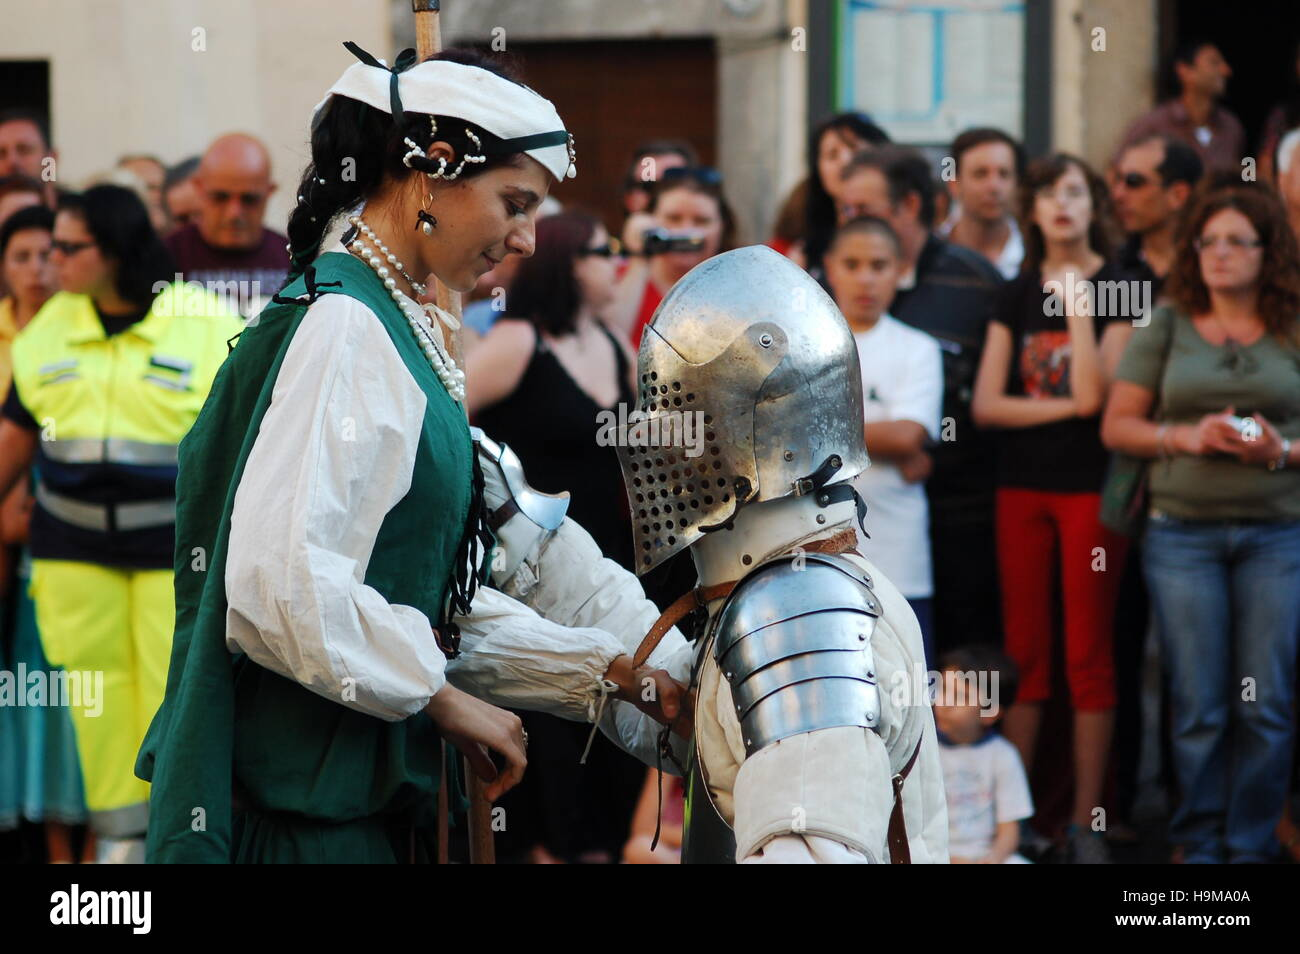 Lady and Knight during medieval re-enactment in Bracciano, Italy Stock Photo